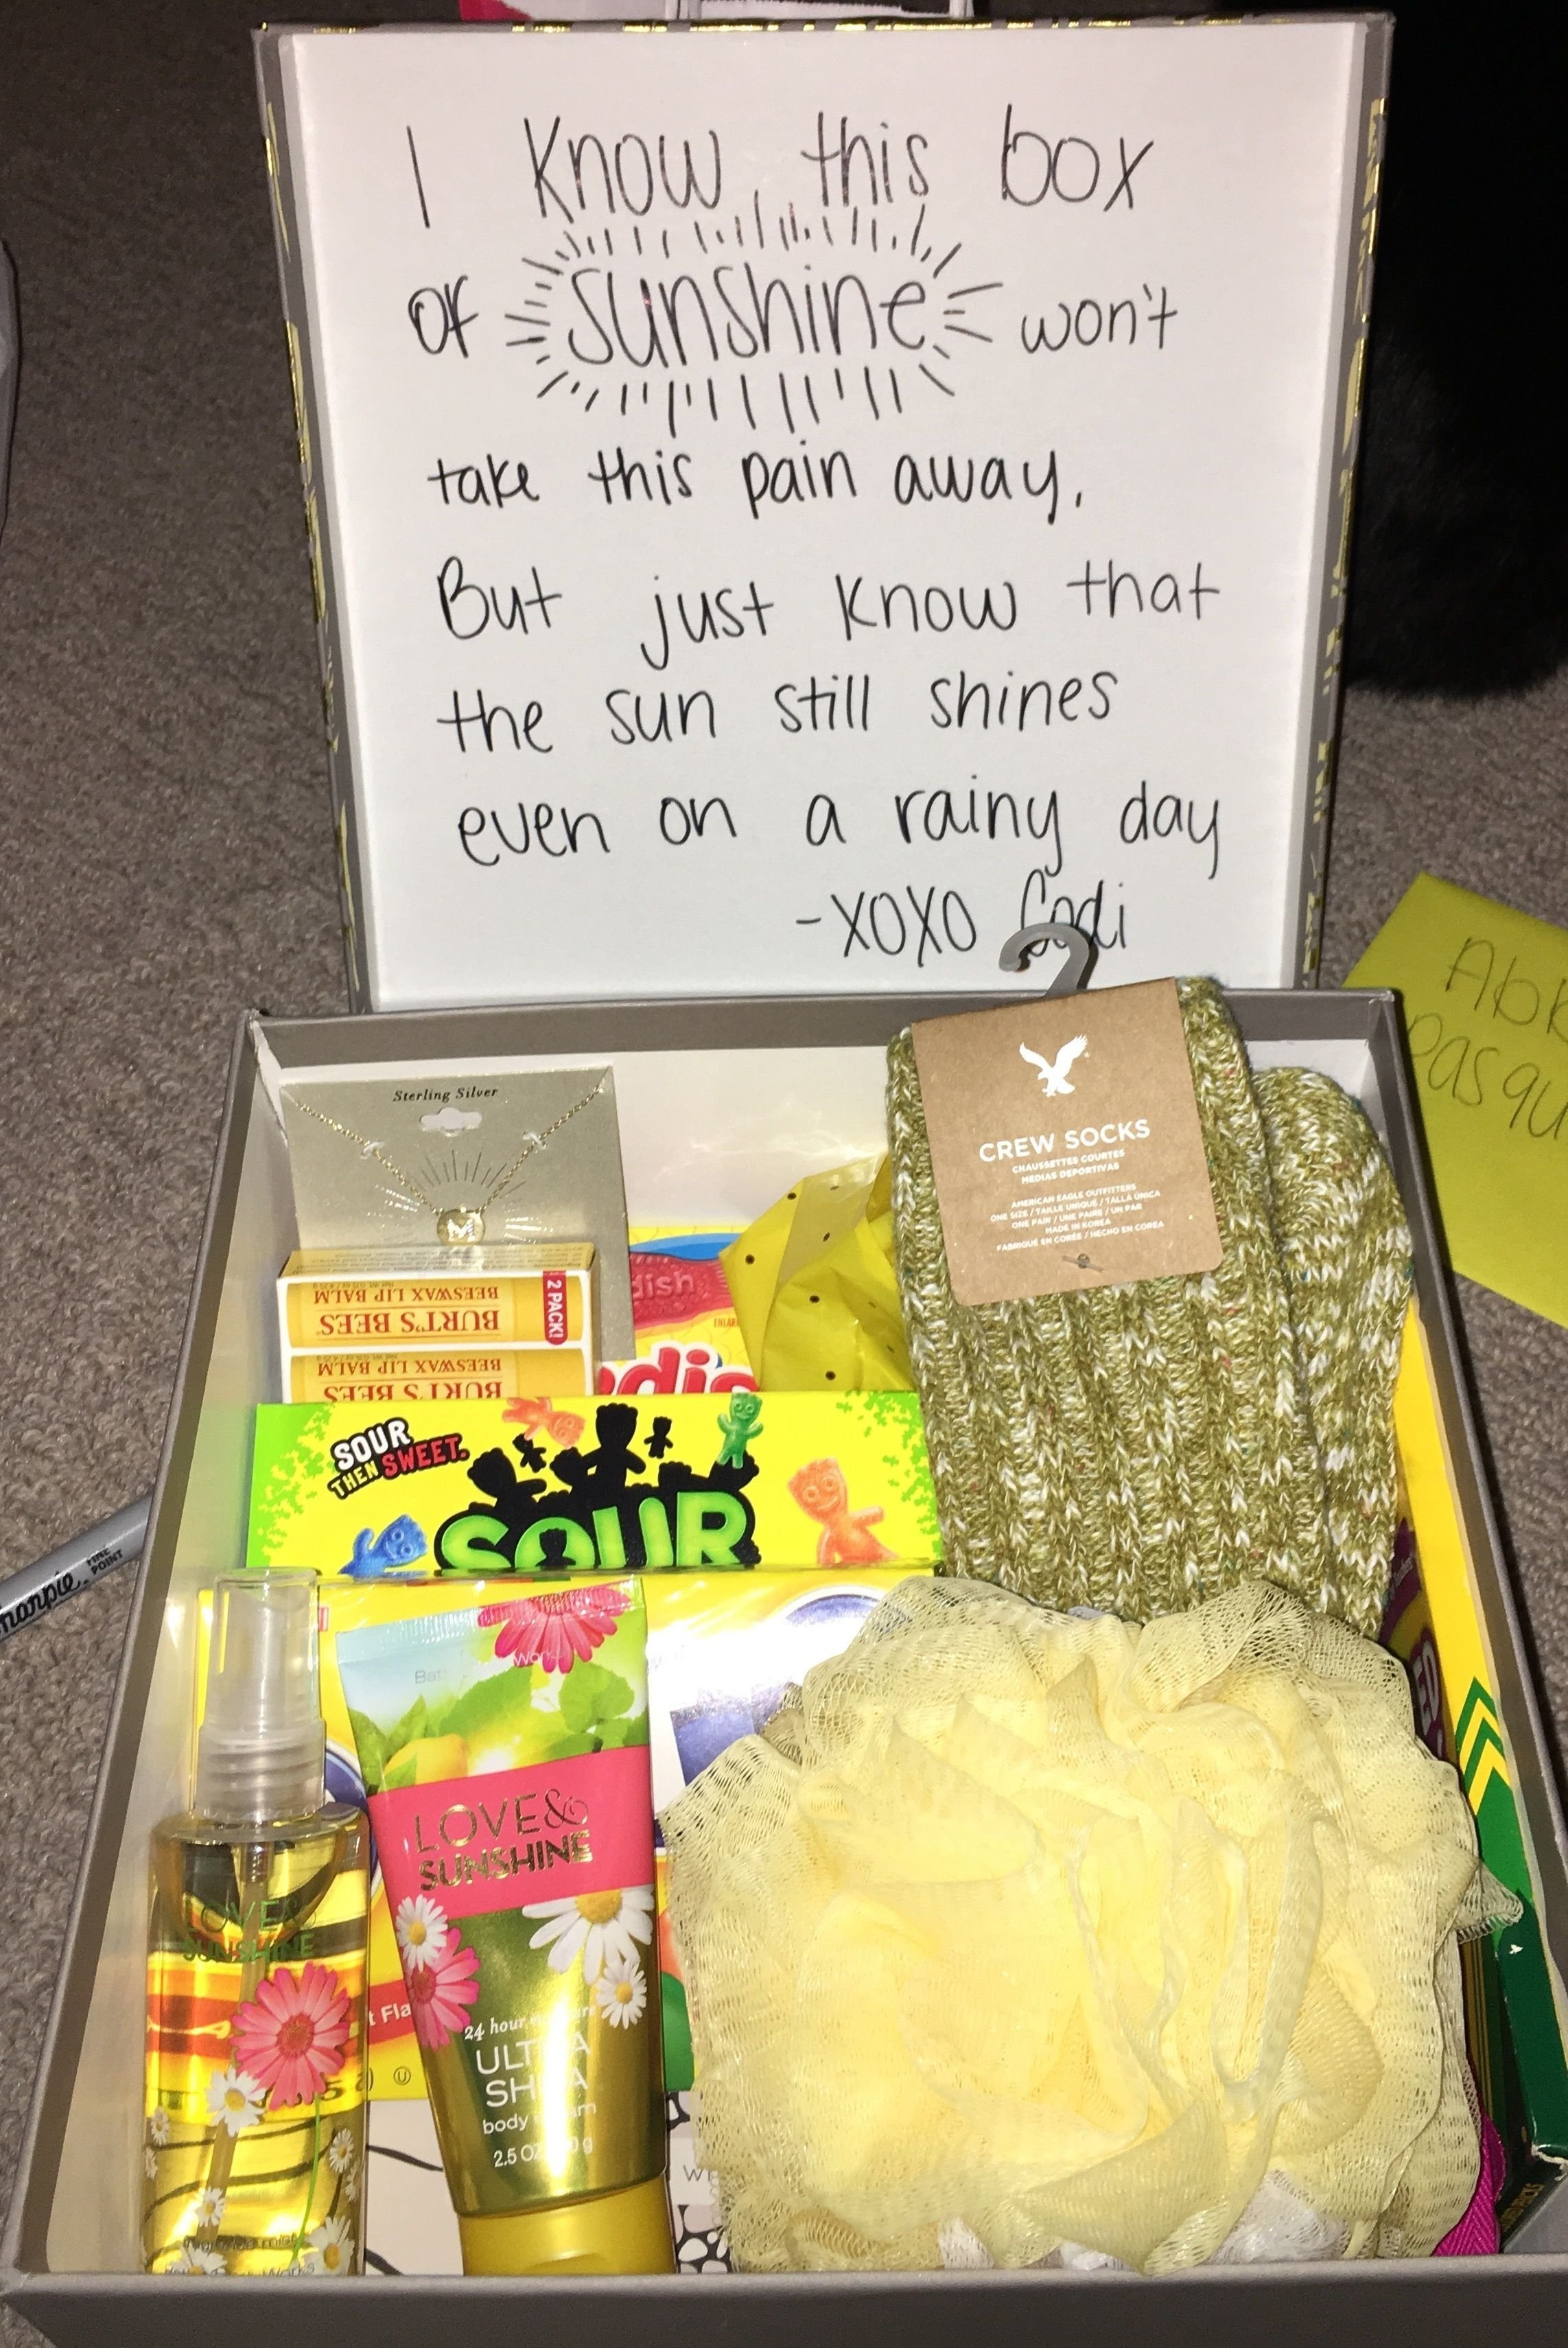 10 Lovable Christmas Present Ideas For Sister care package for grieving friend good idea pinterest gift 34 2020